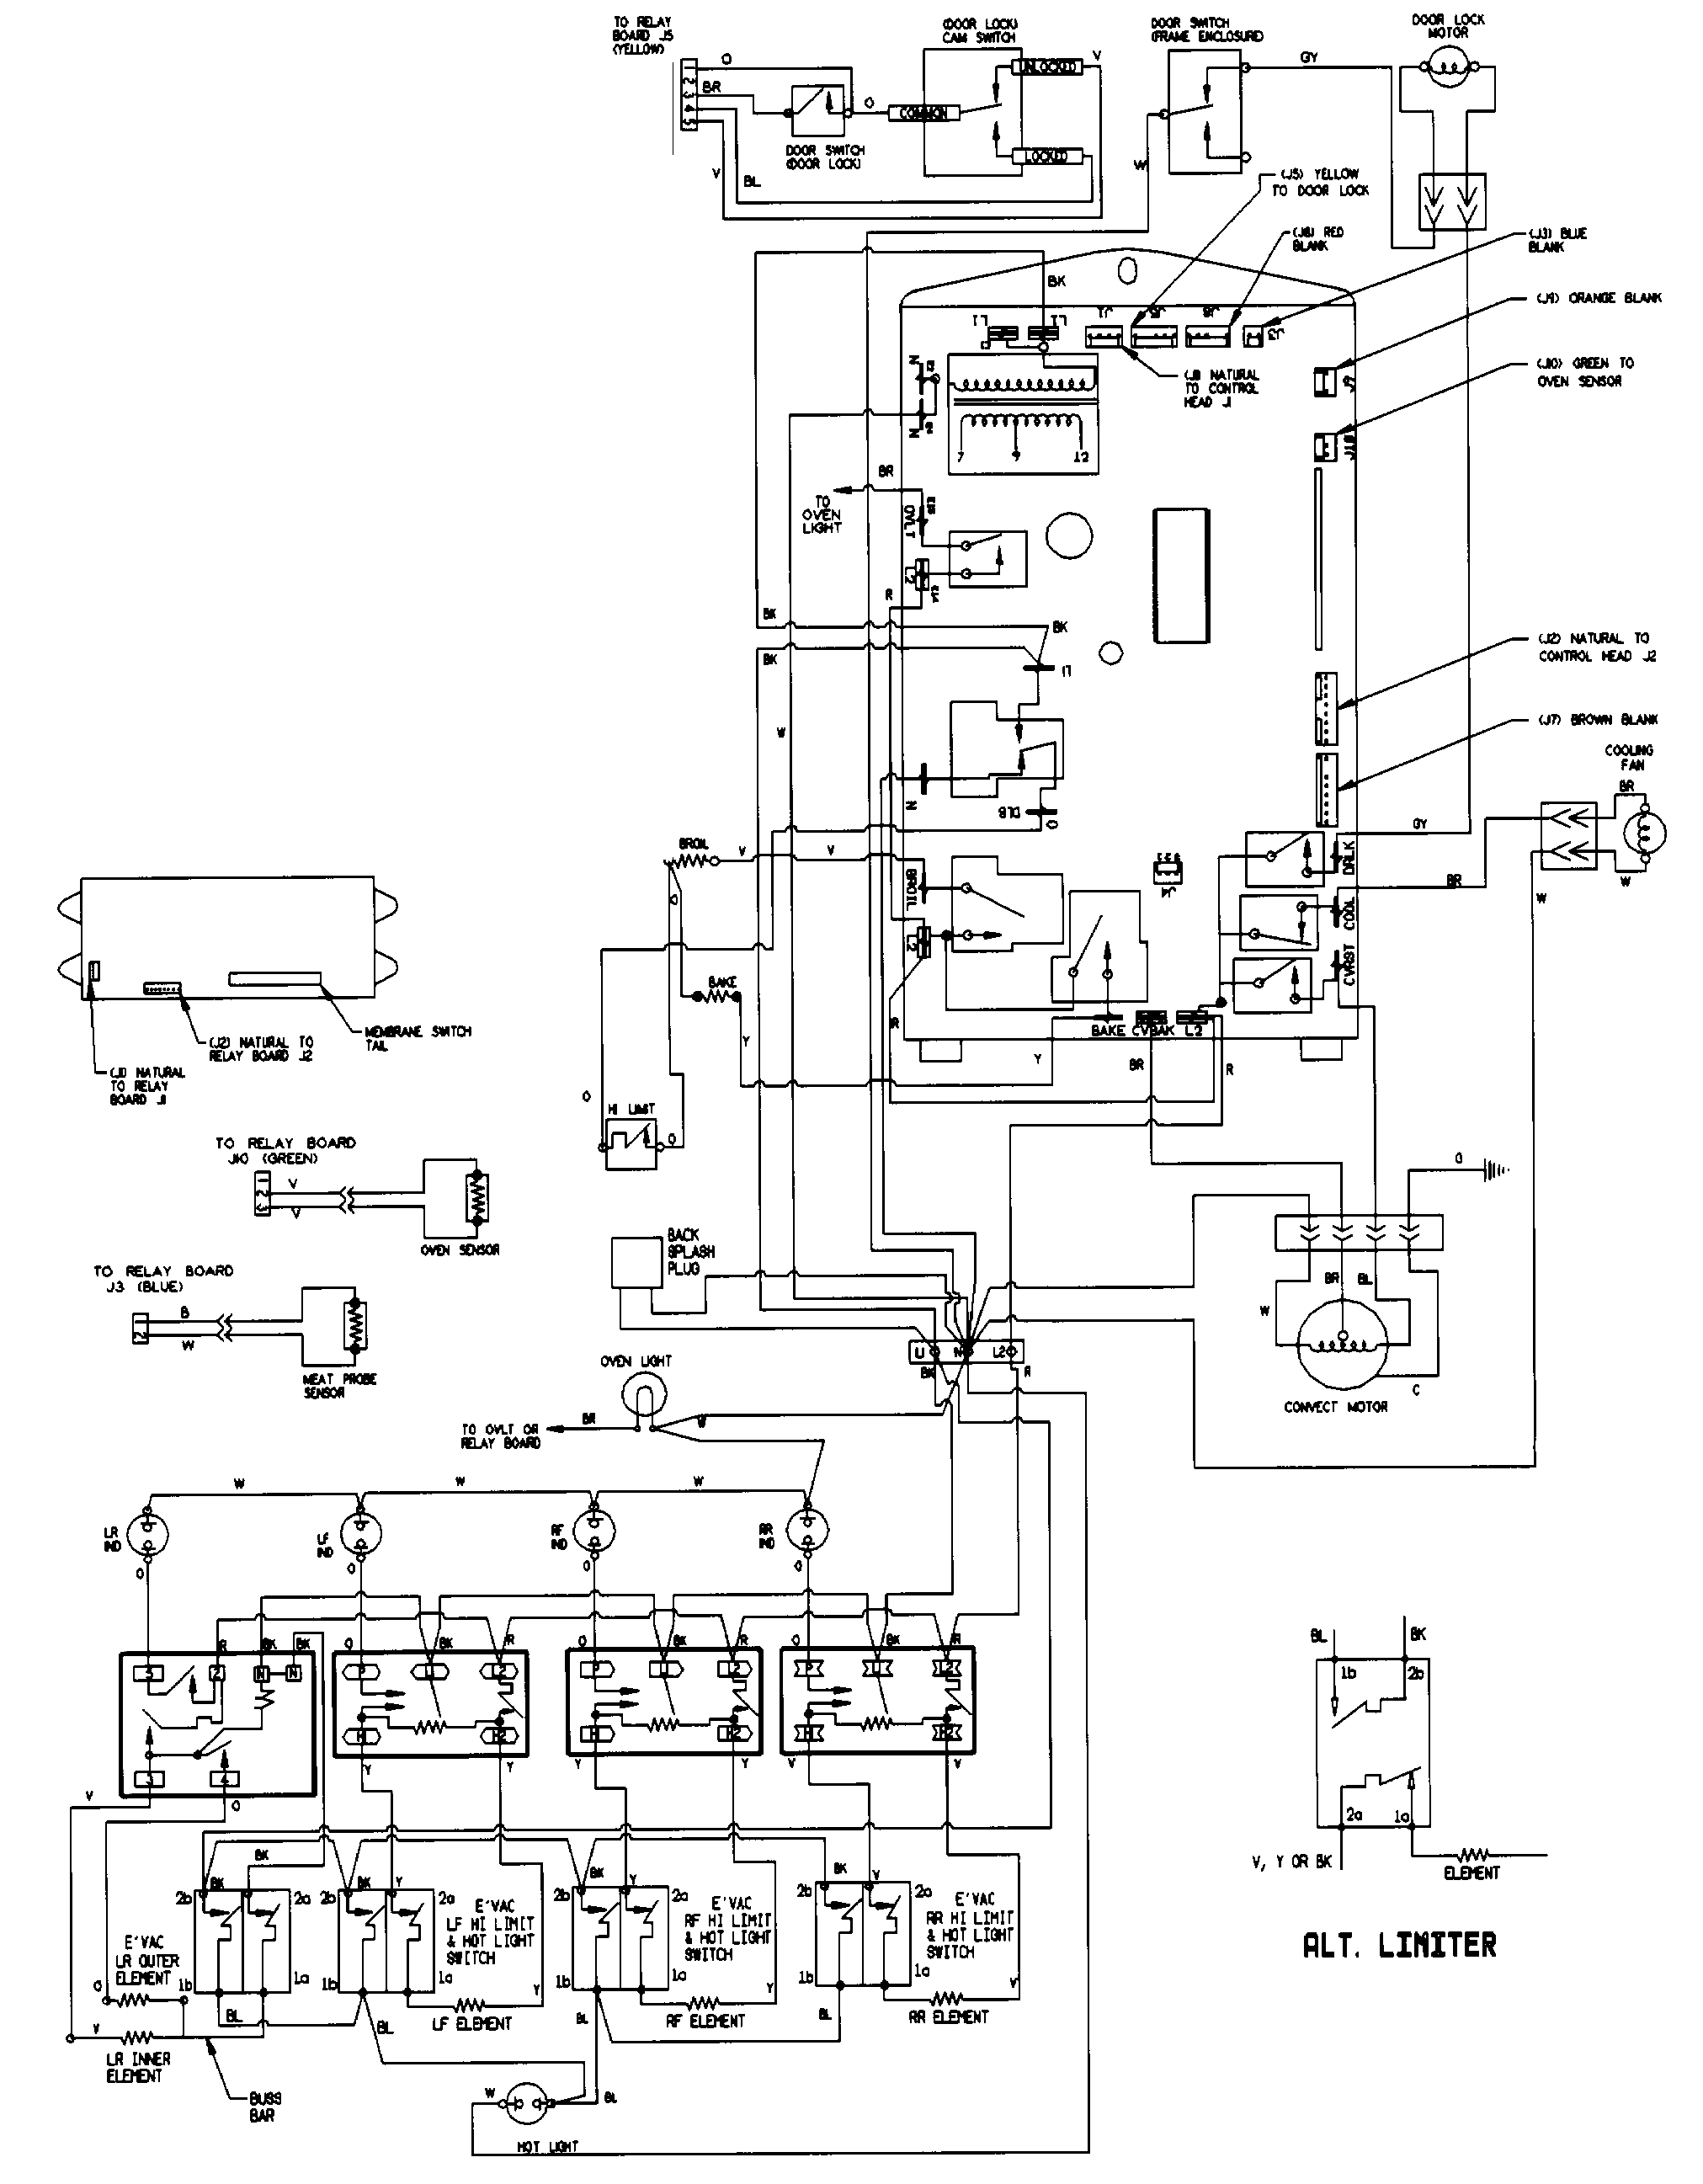 kenmore 3 prong dryer wiring diagram